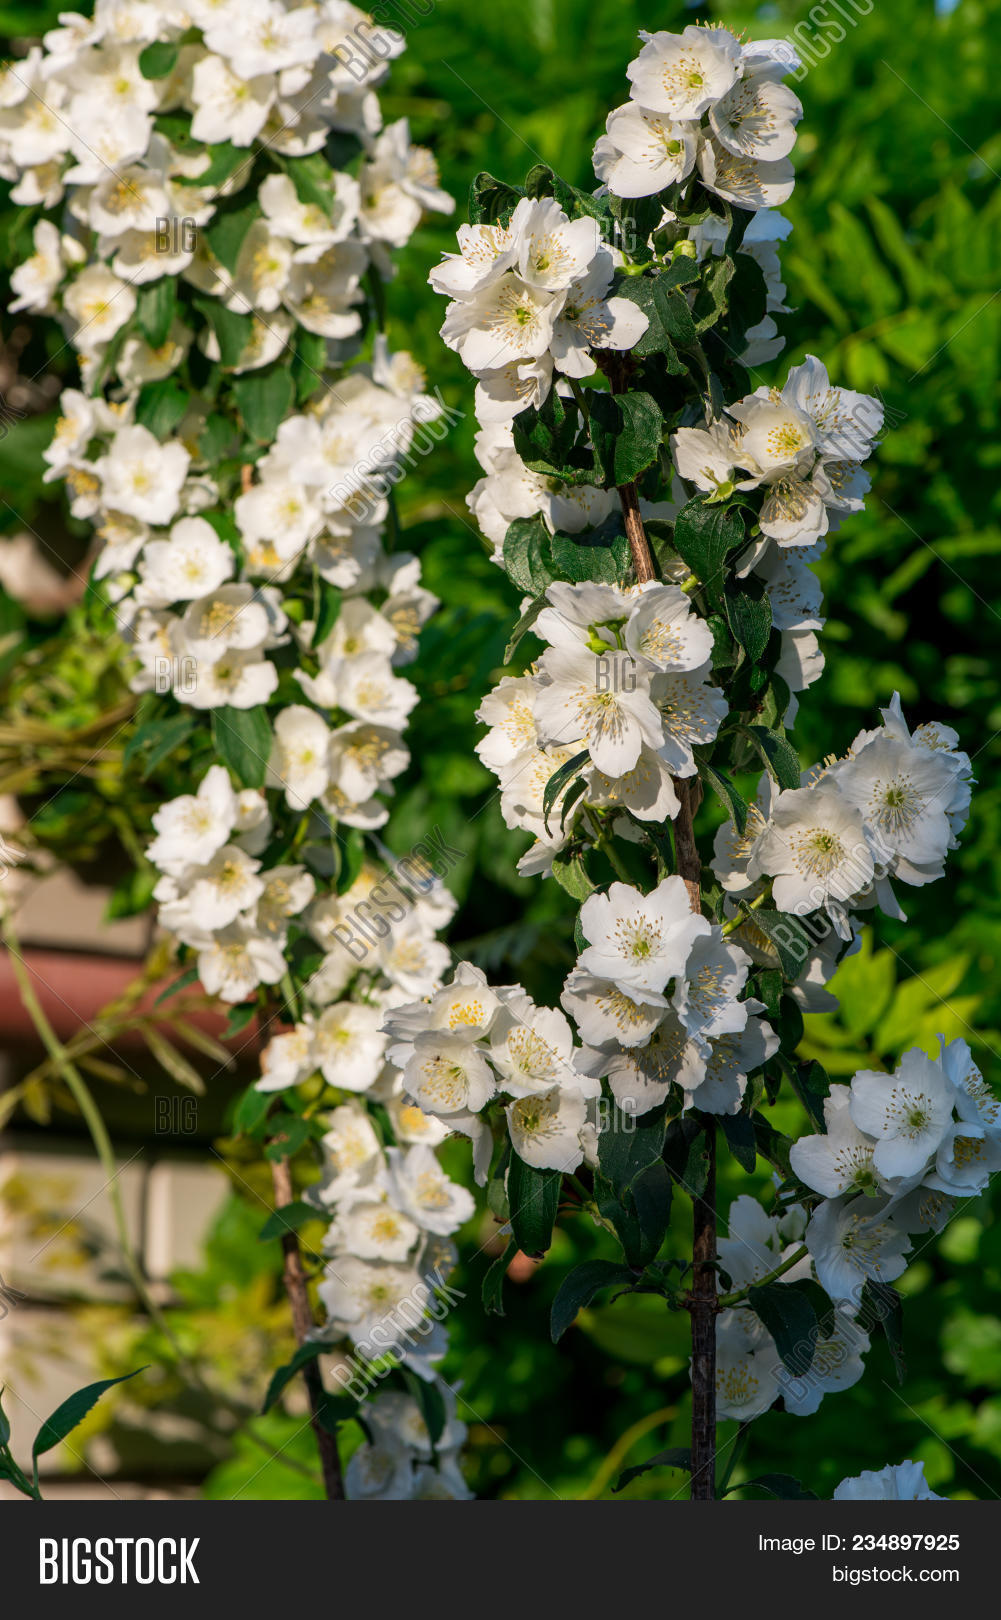 Jasmine Flowers Image Photo Free Trial Bigstock